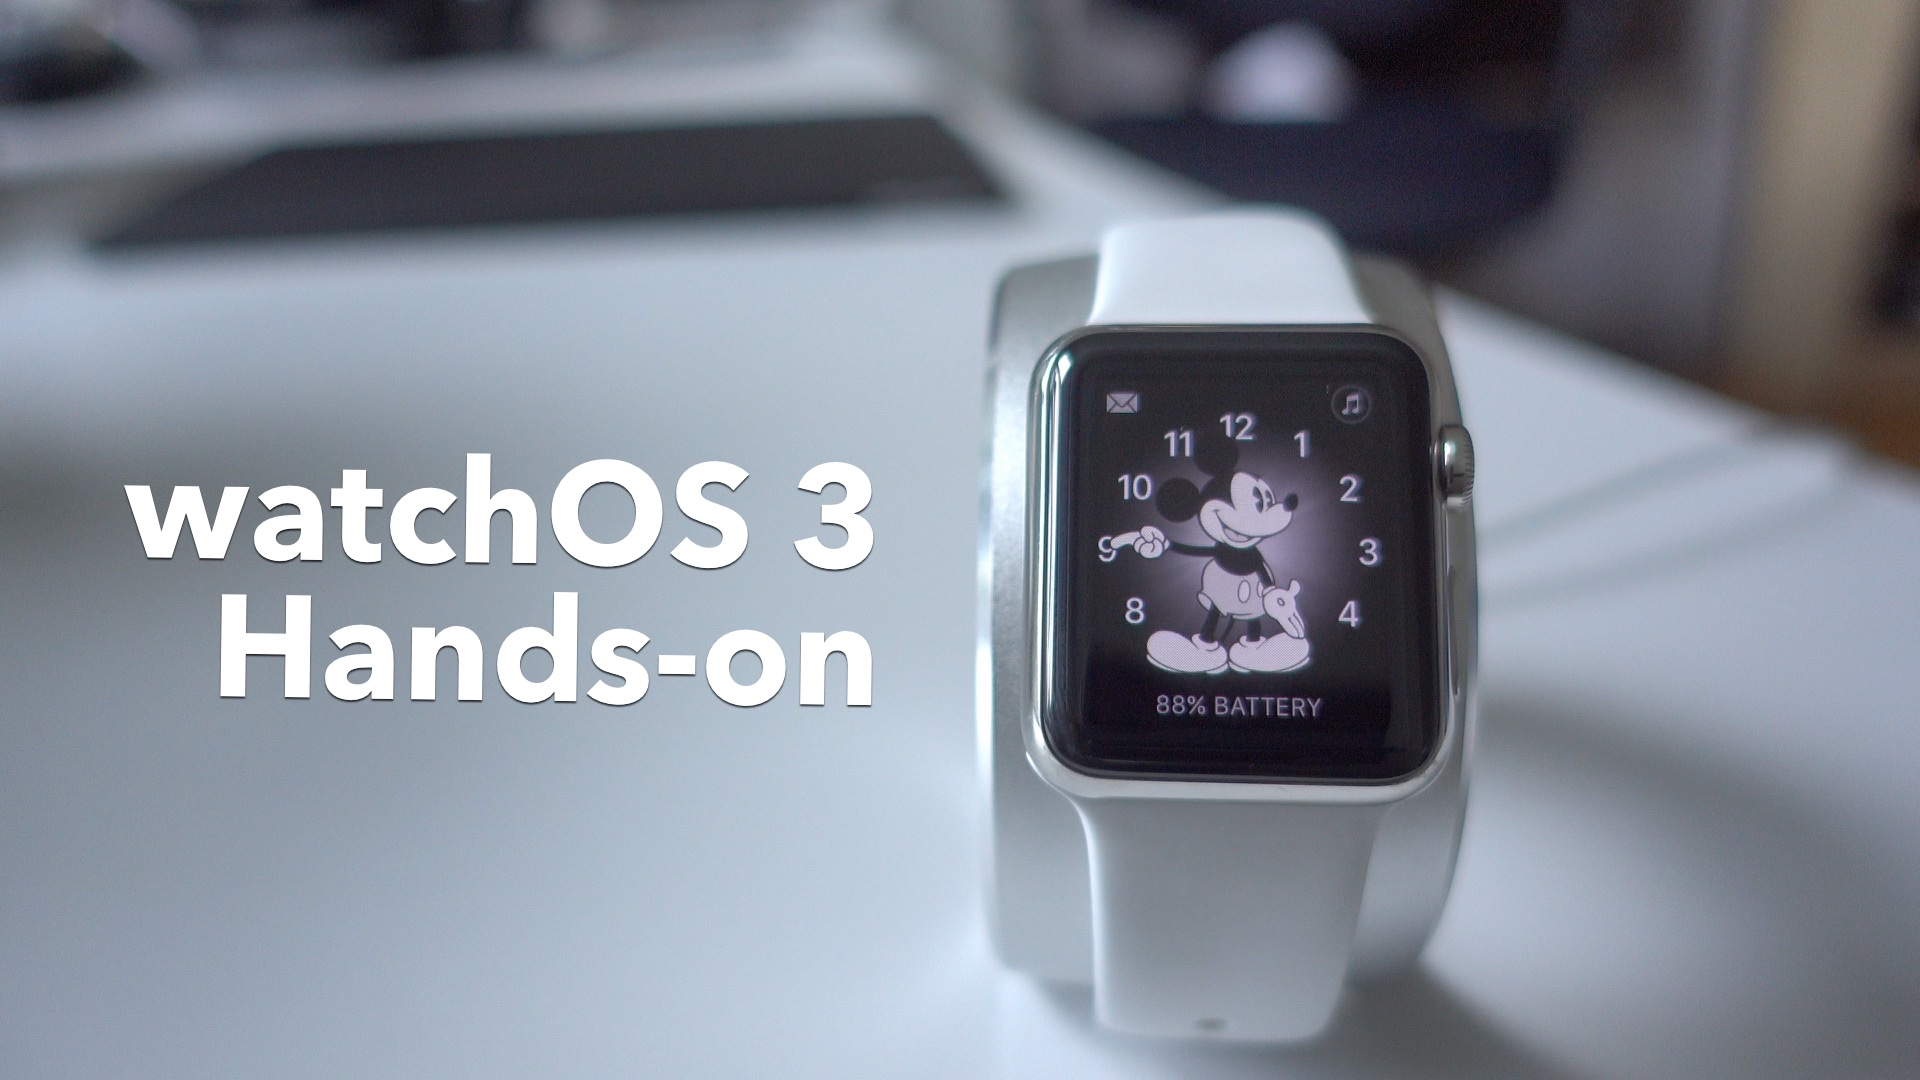 watchOS 3 hands on